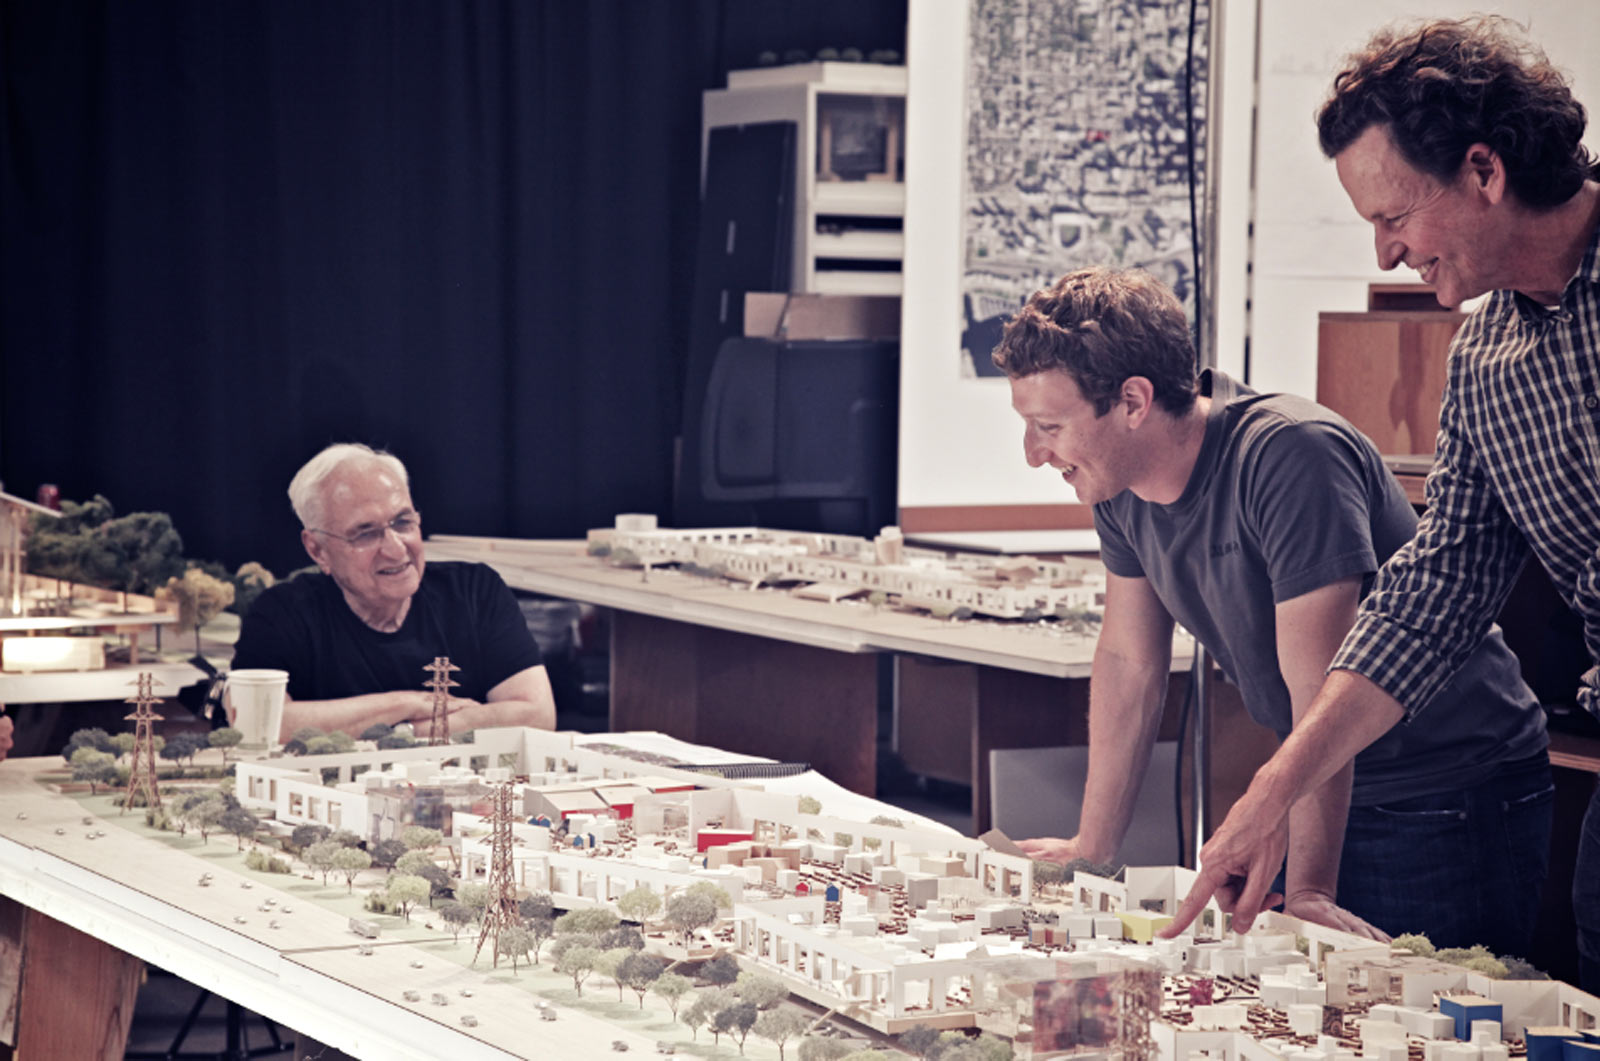 Facebook 39 s new menlo park campus to be designed by frank gehry for O architecture facebook